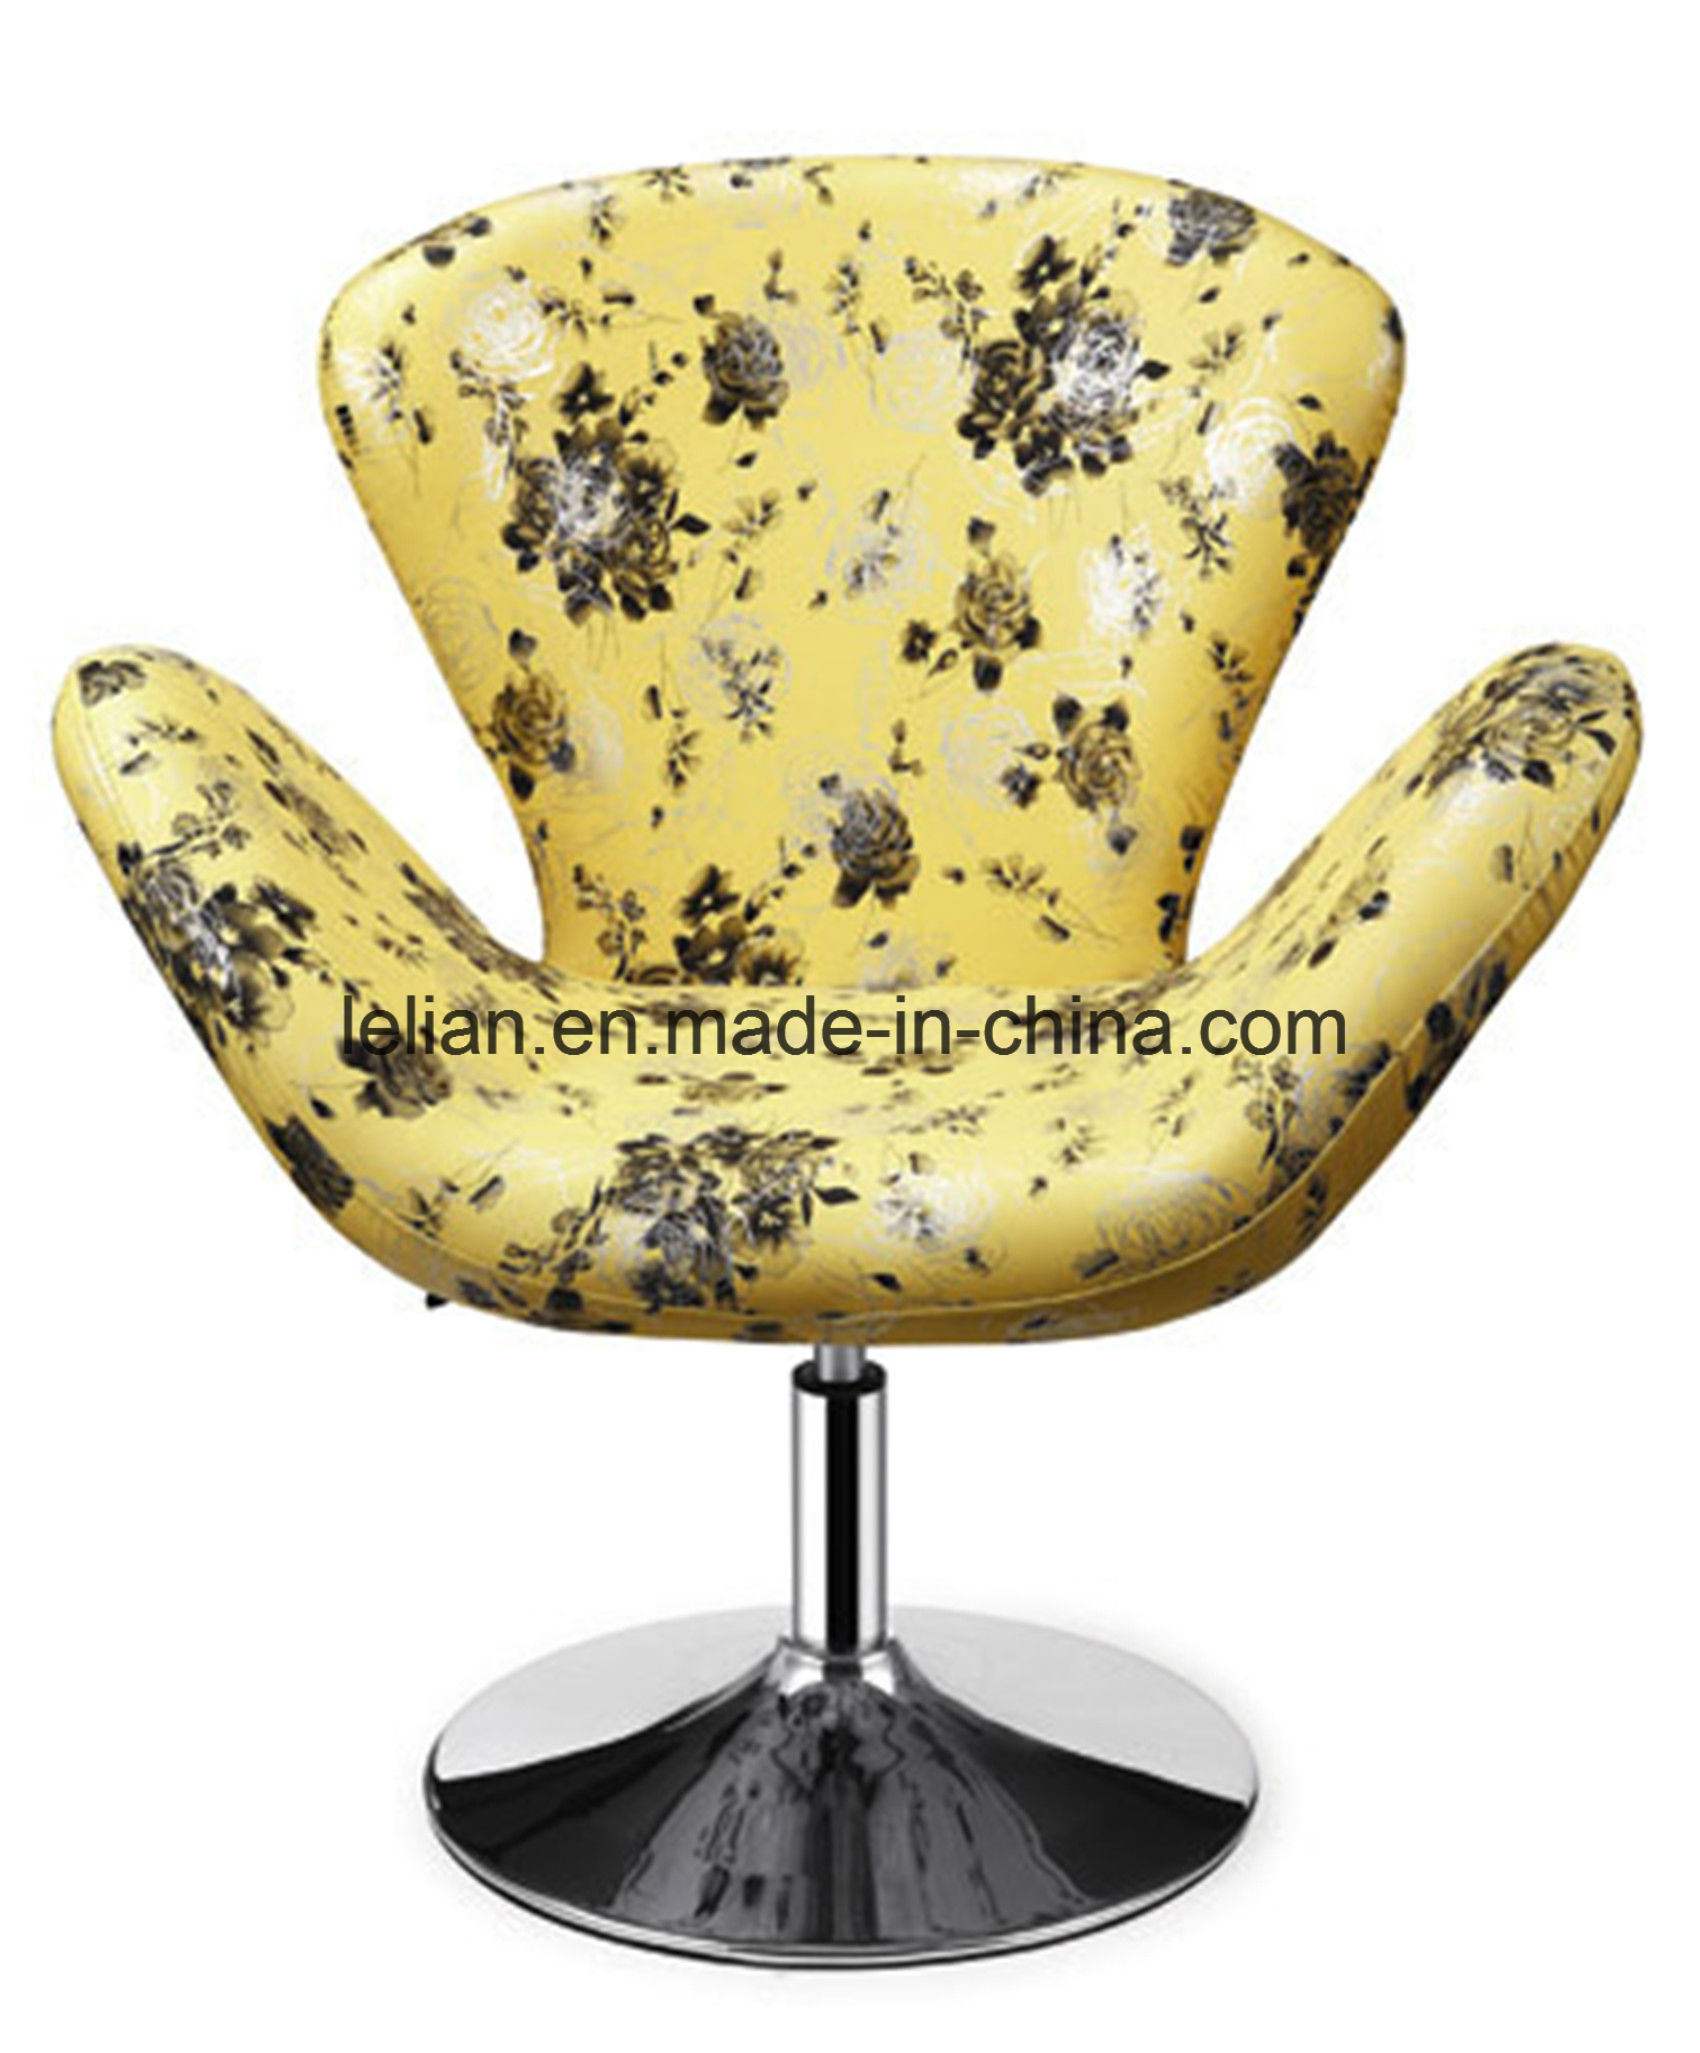 Executive Single Seater Sofa Chairs High Quality Modern Office Furniture (LL-BC069) pictures & photos